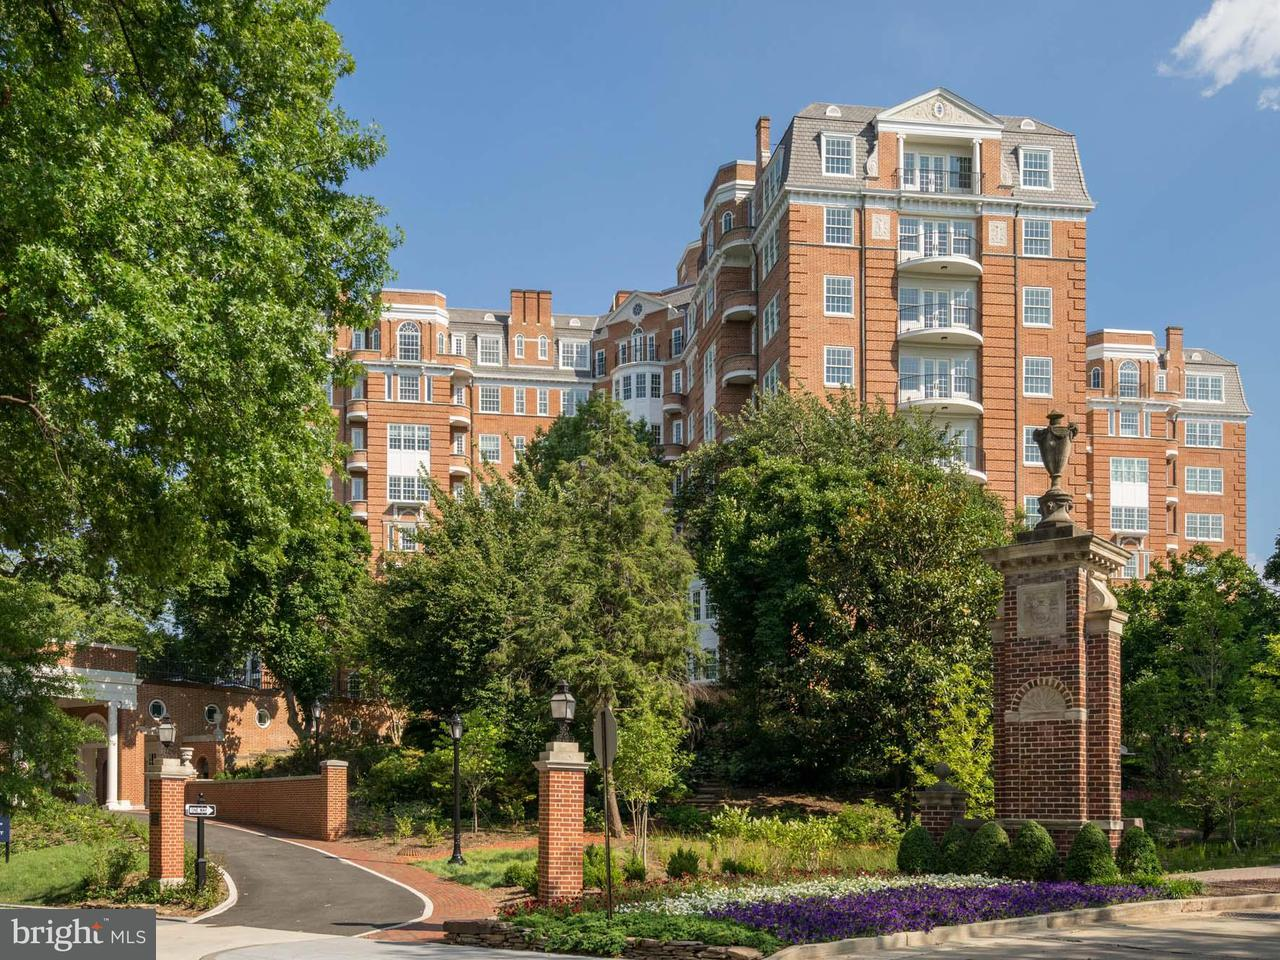 Single Family Home for Sale at 2660 CONNECTICUT AVE NW #5D 2660 CONNECTICUT AVE NW #5D Washington, District Of Columbia 20008 United States